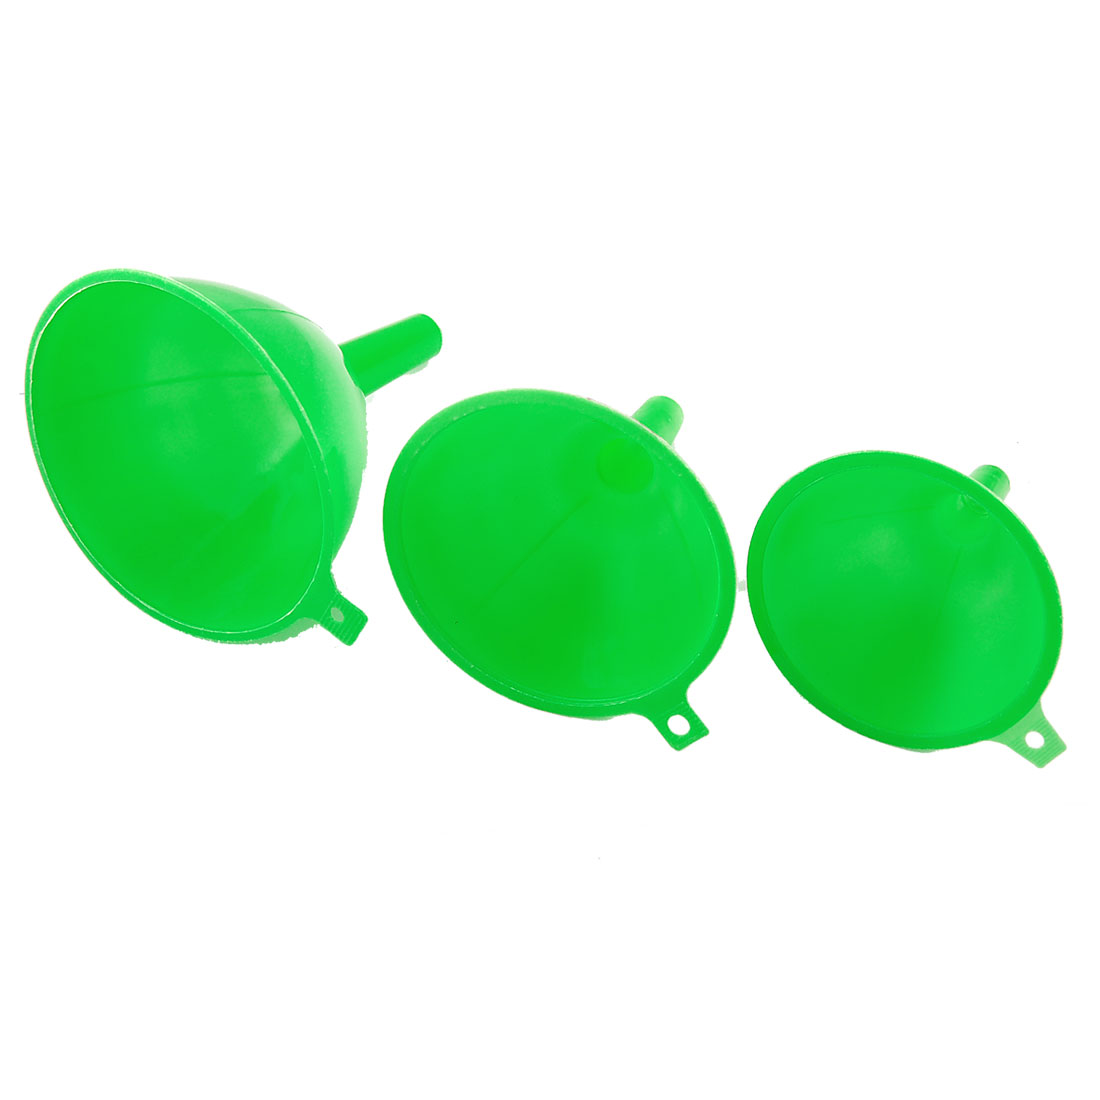 Green Plastic 3 Pcs Different Sizes Laboratory Filter Funnel Set